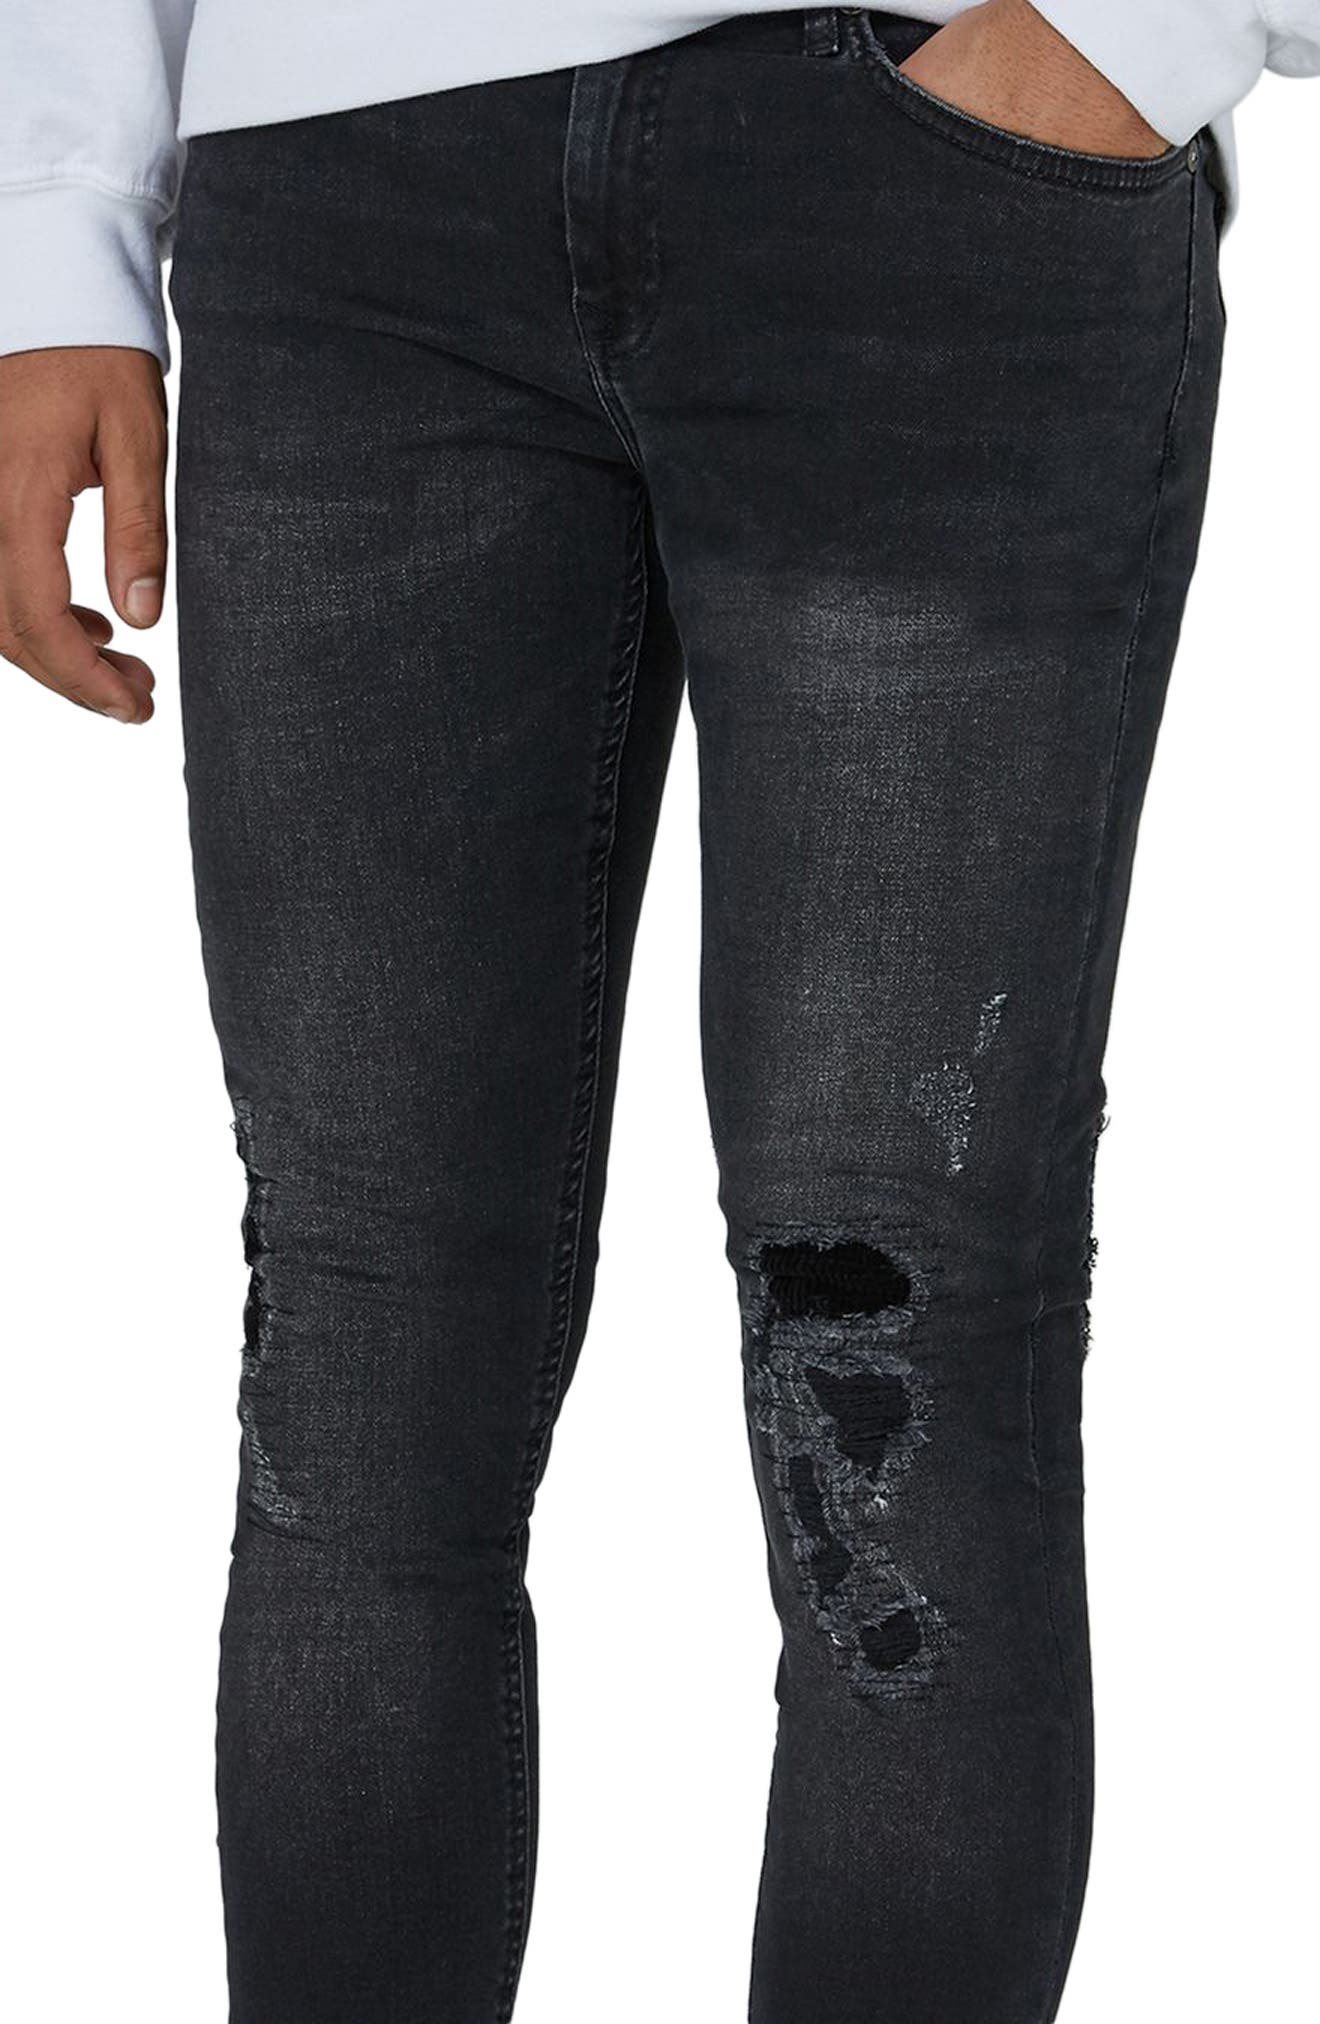 Repair Spray-On Skinny Fit Jeans,                             Alternate thumbnail 3, color,                             Black